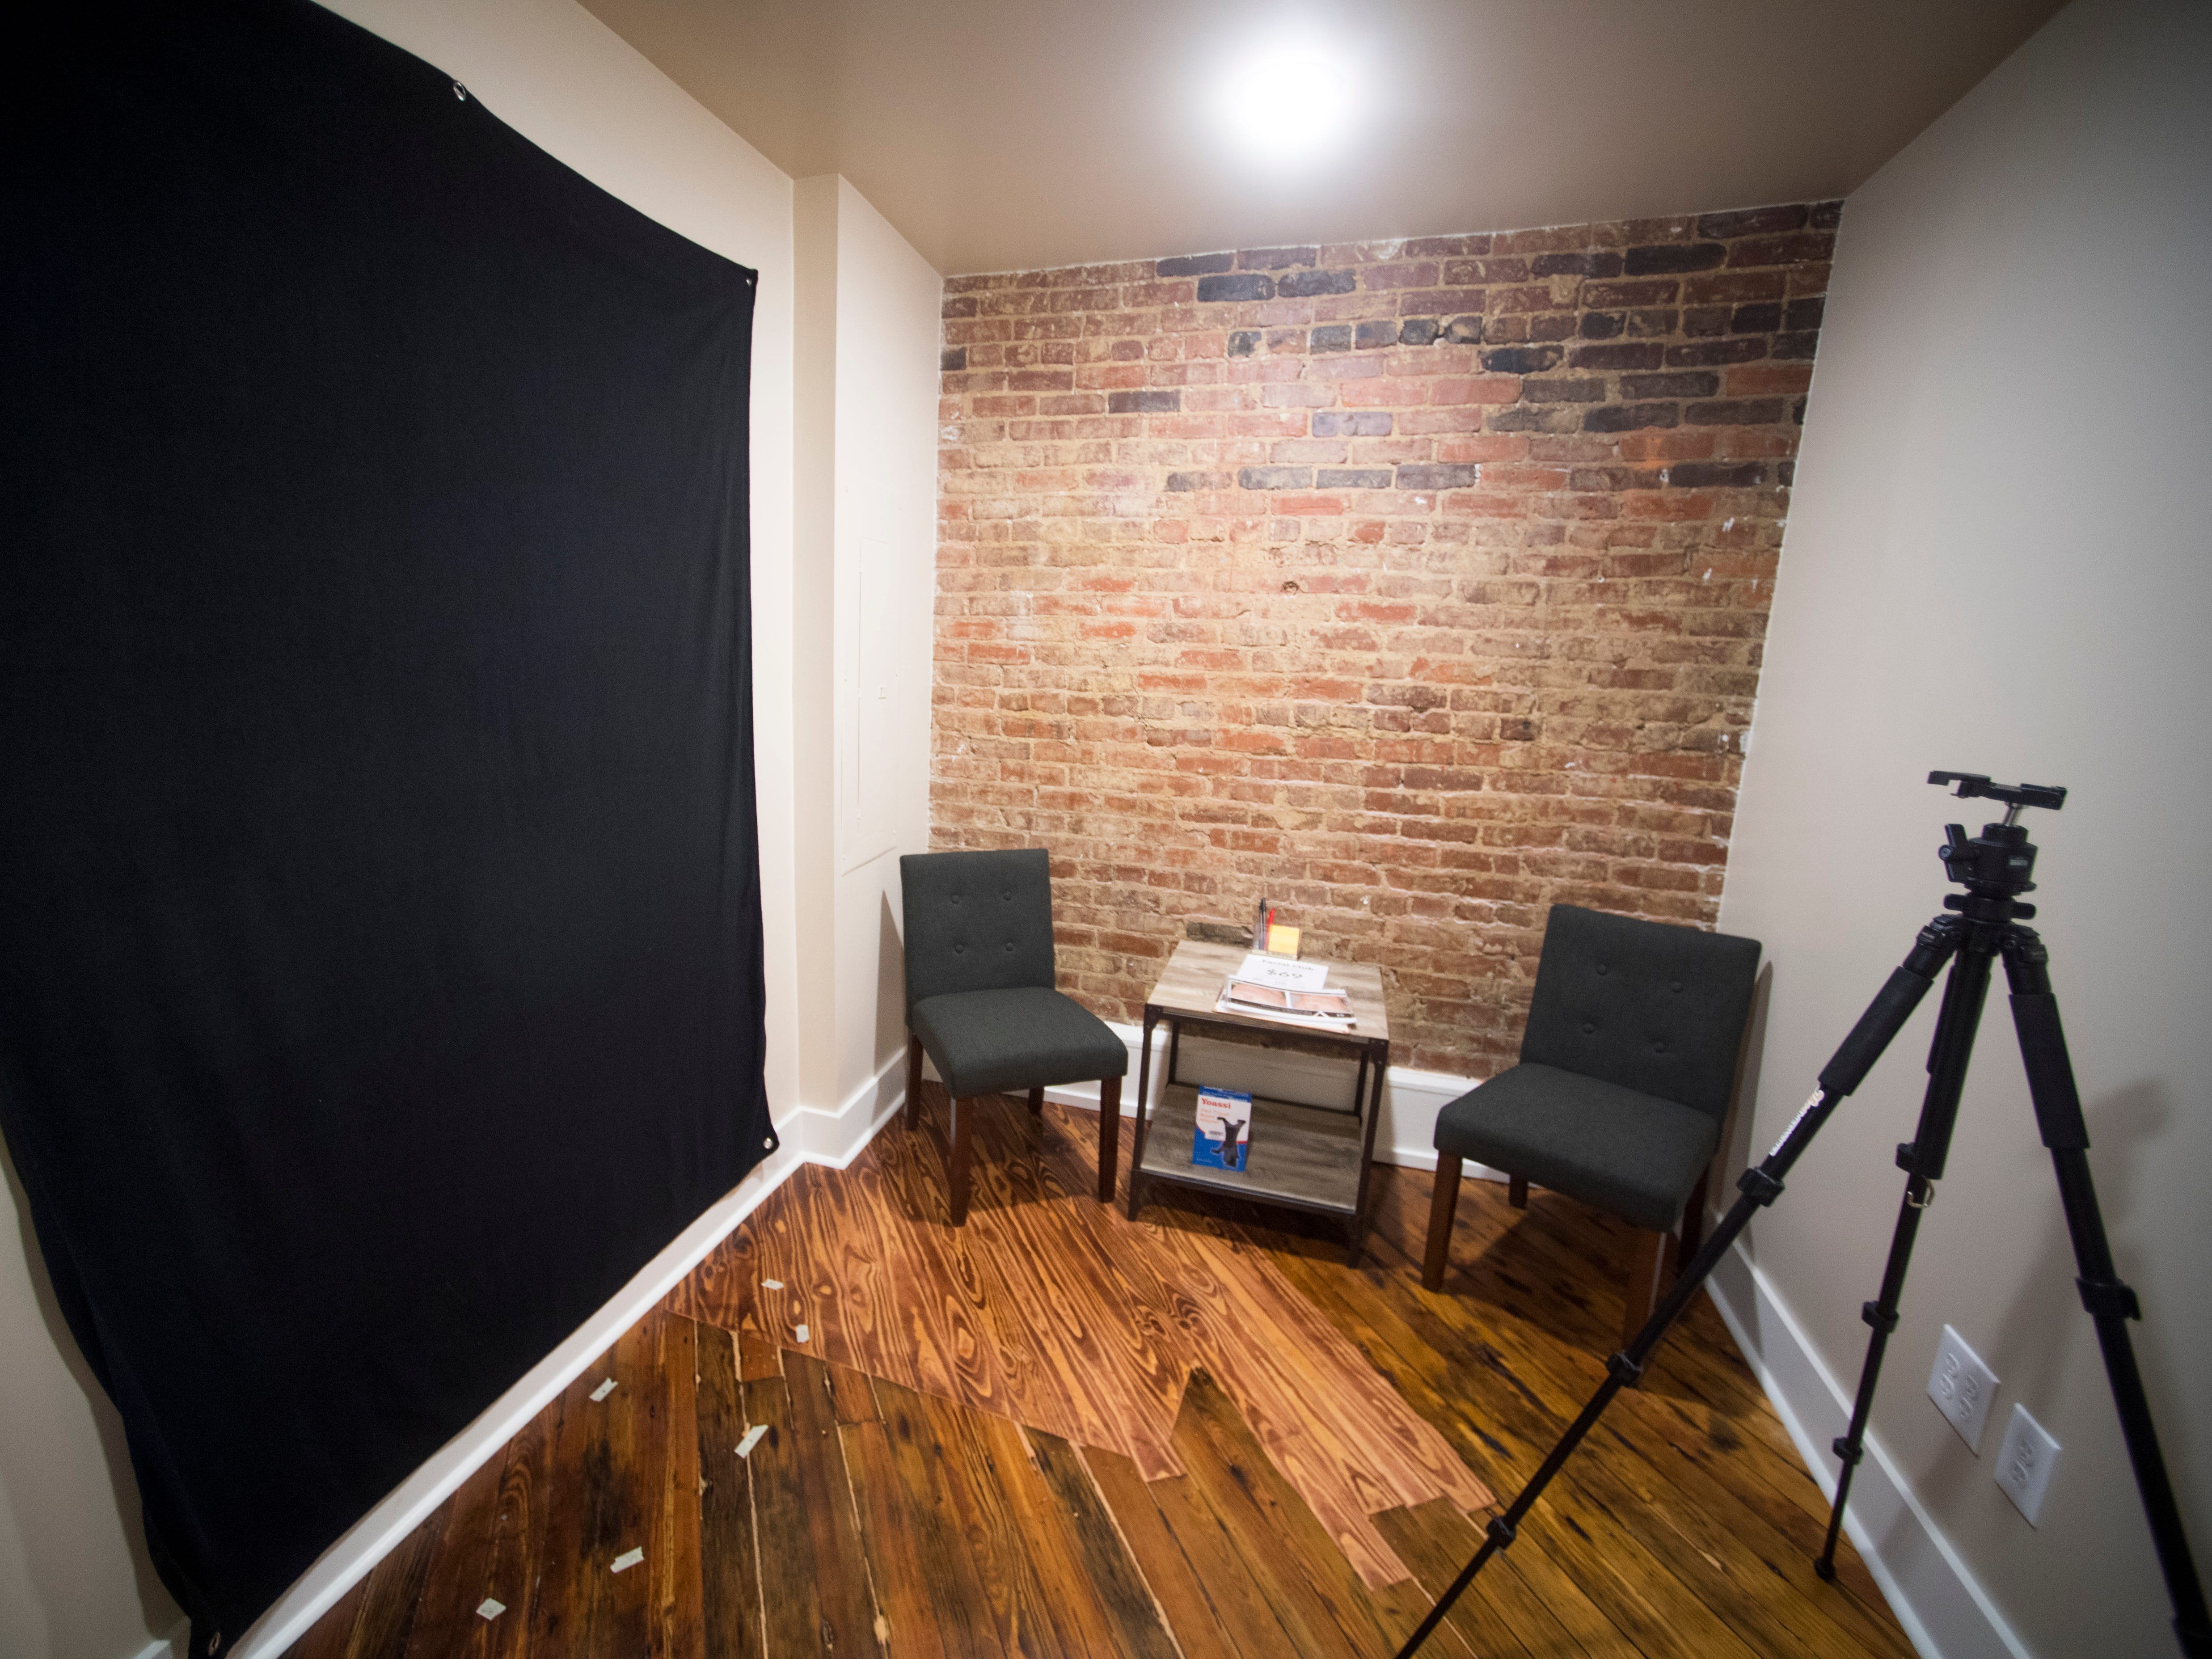 The consultation room at Old City MedSpa in downtown Knoxville on Monday, Feb. 4, 2019